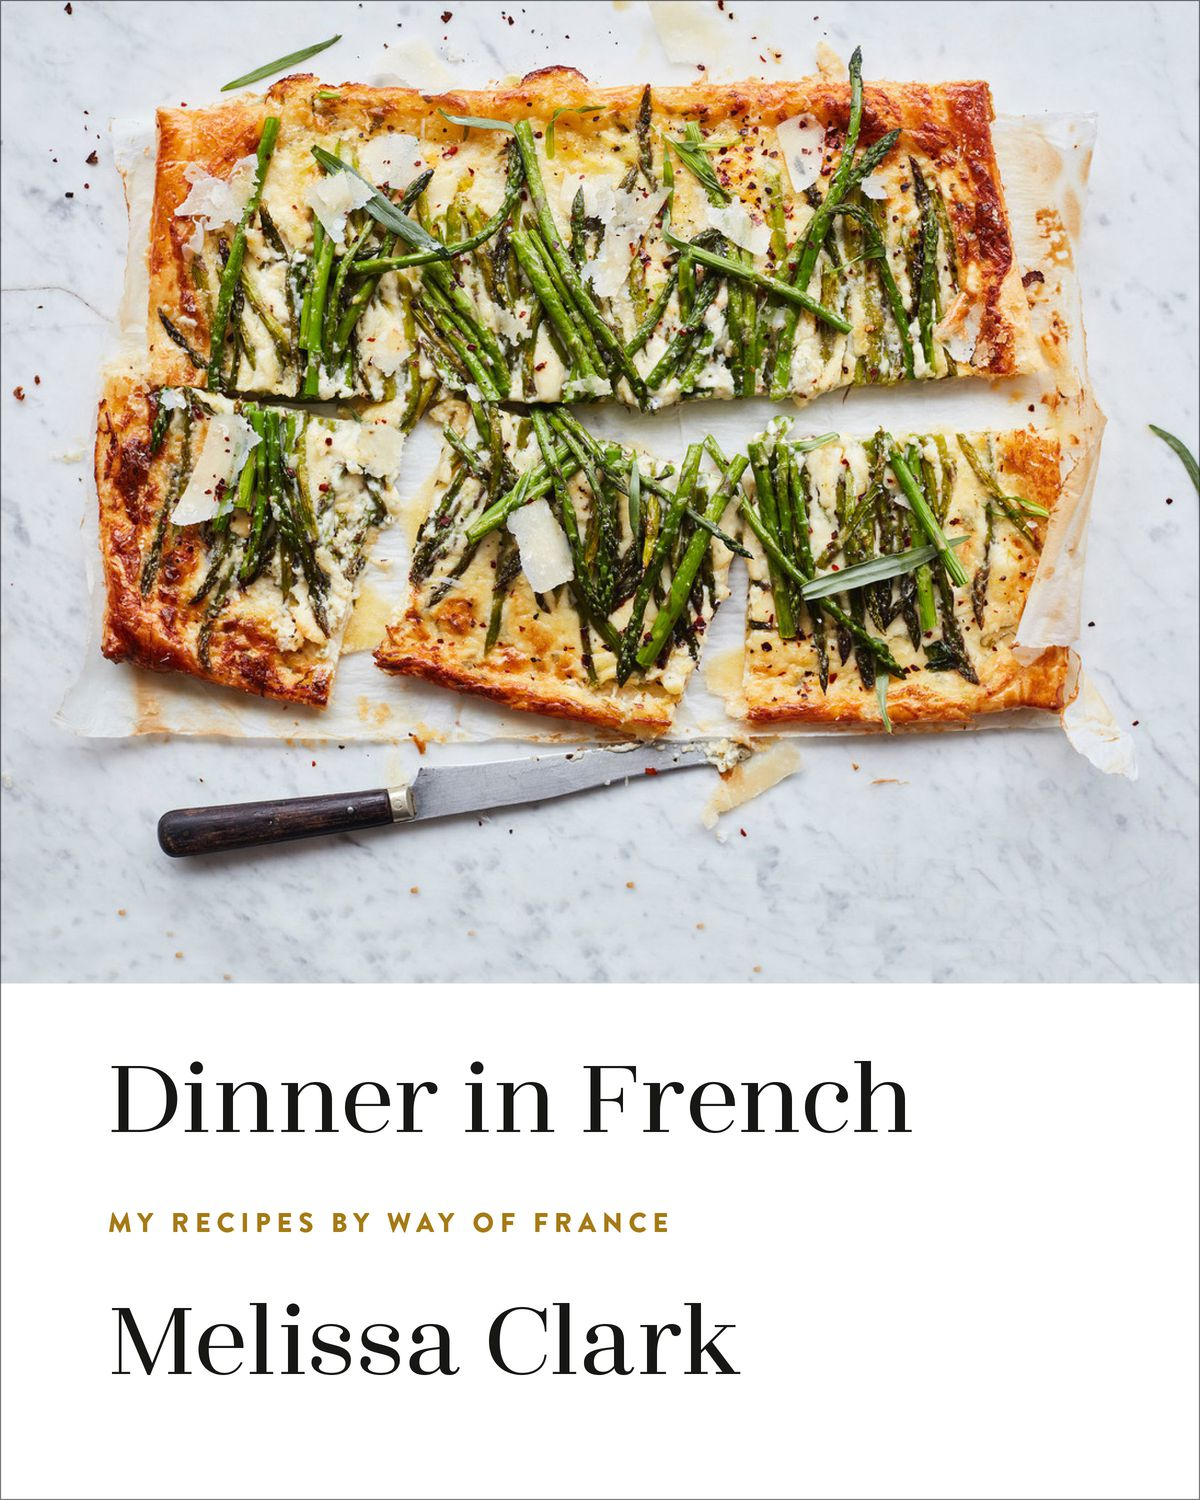 The book cover for Dinner in French